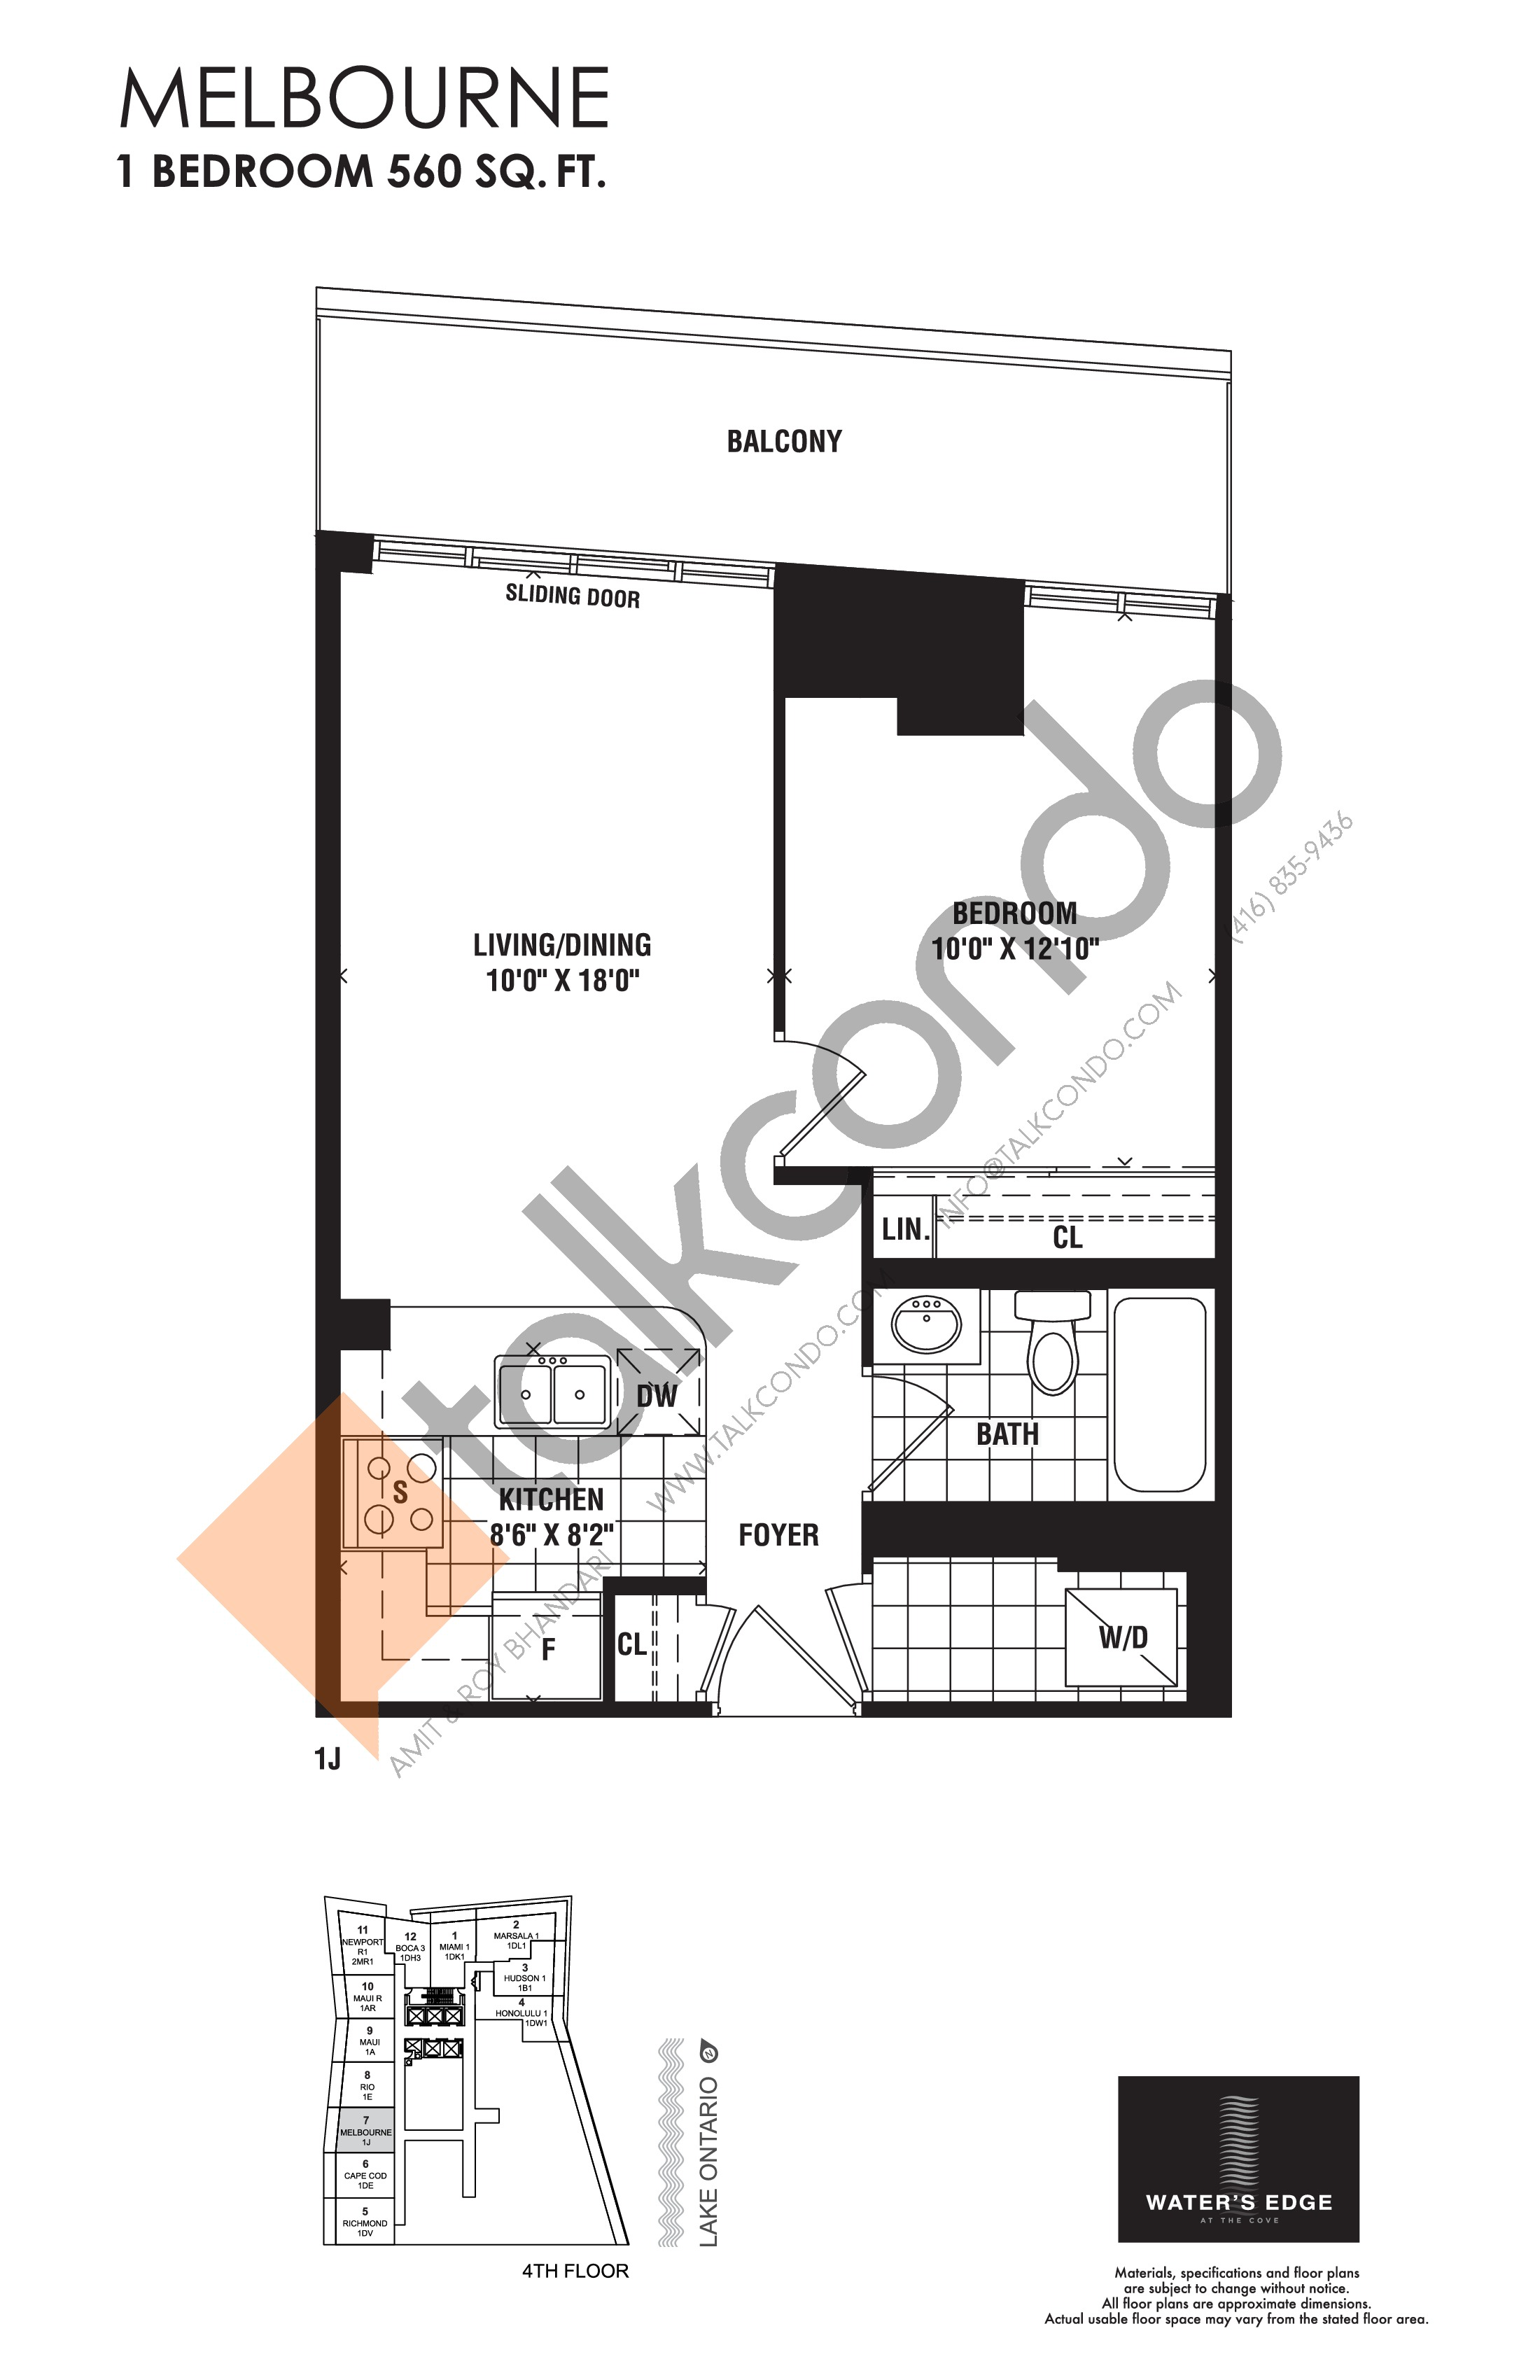 Melbourne Floor Plan at Water's Edge at the Cove Condos - 560 sq.ft